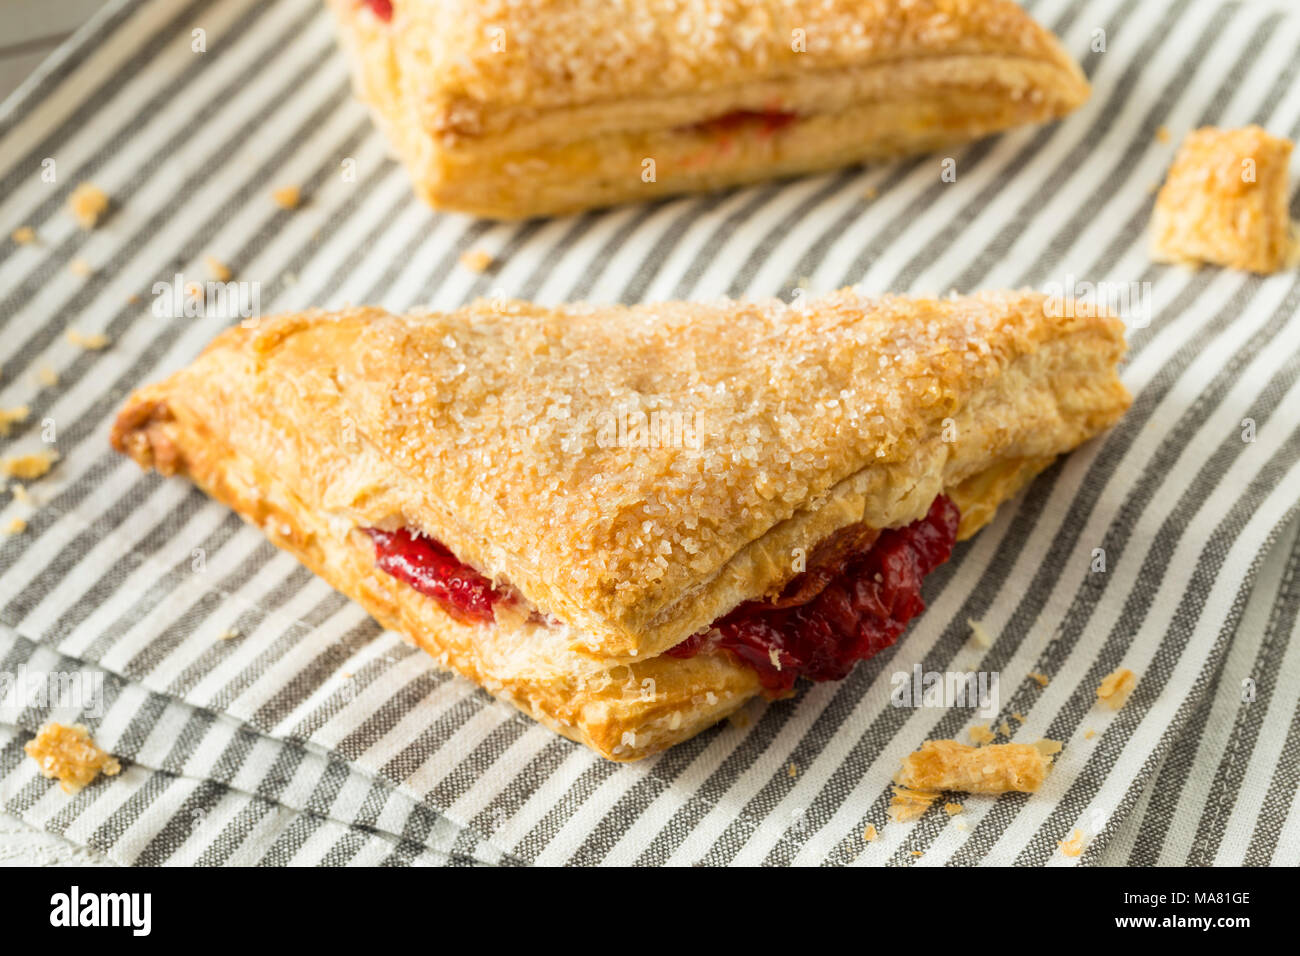 Homemade Cherry Turnover Pastries Ready to Eat - Stock Image